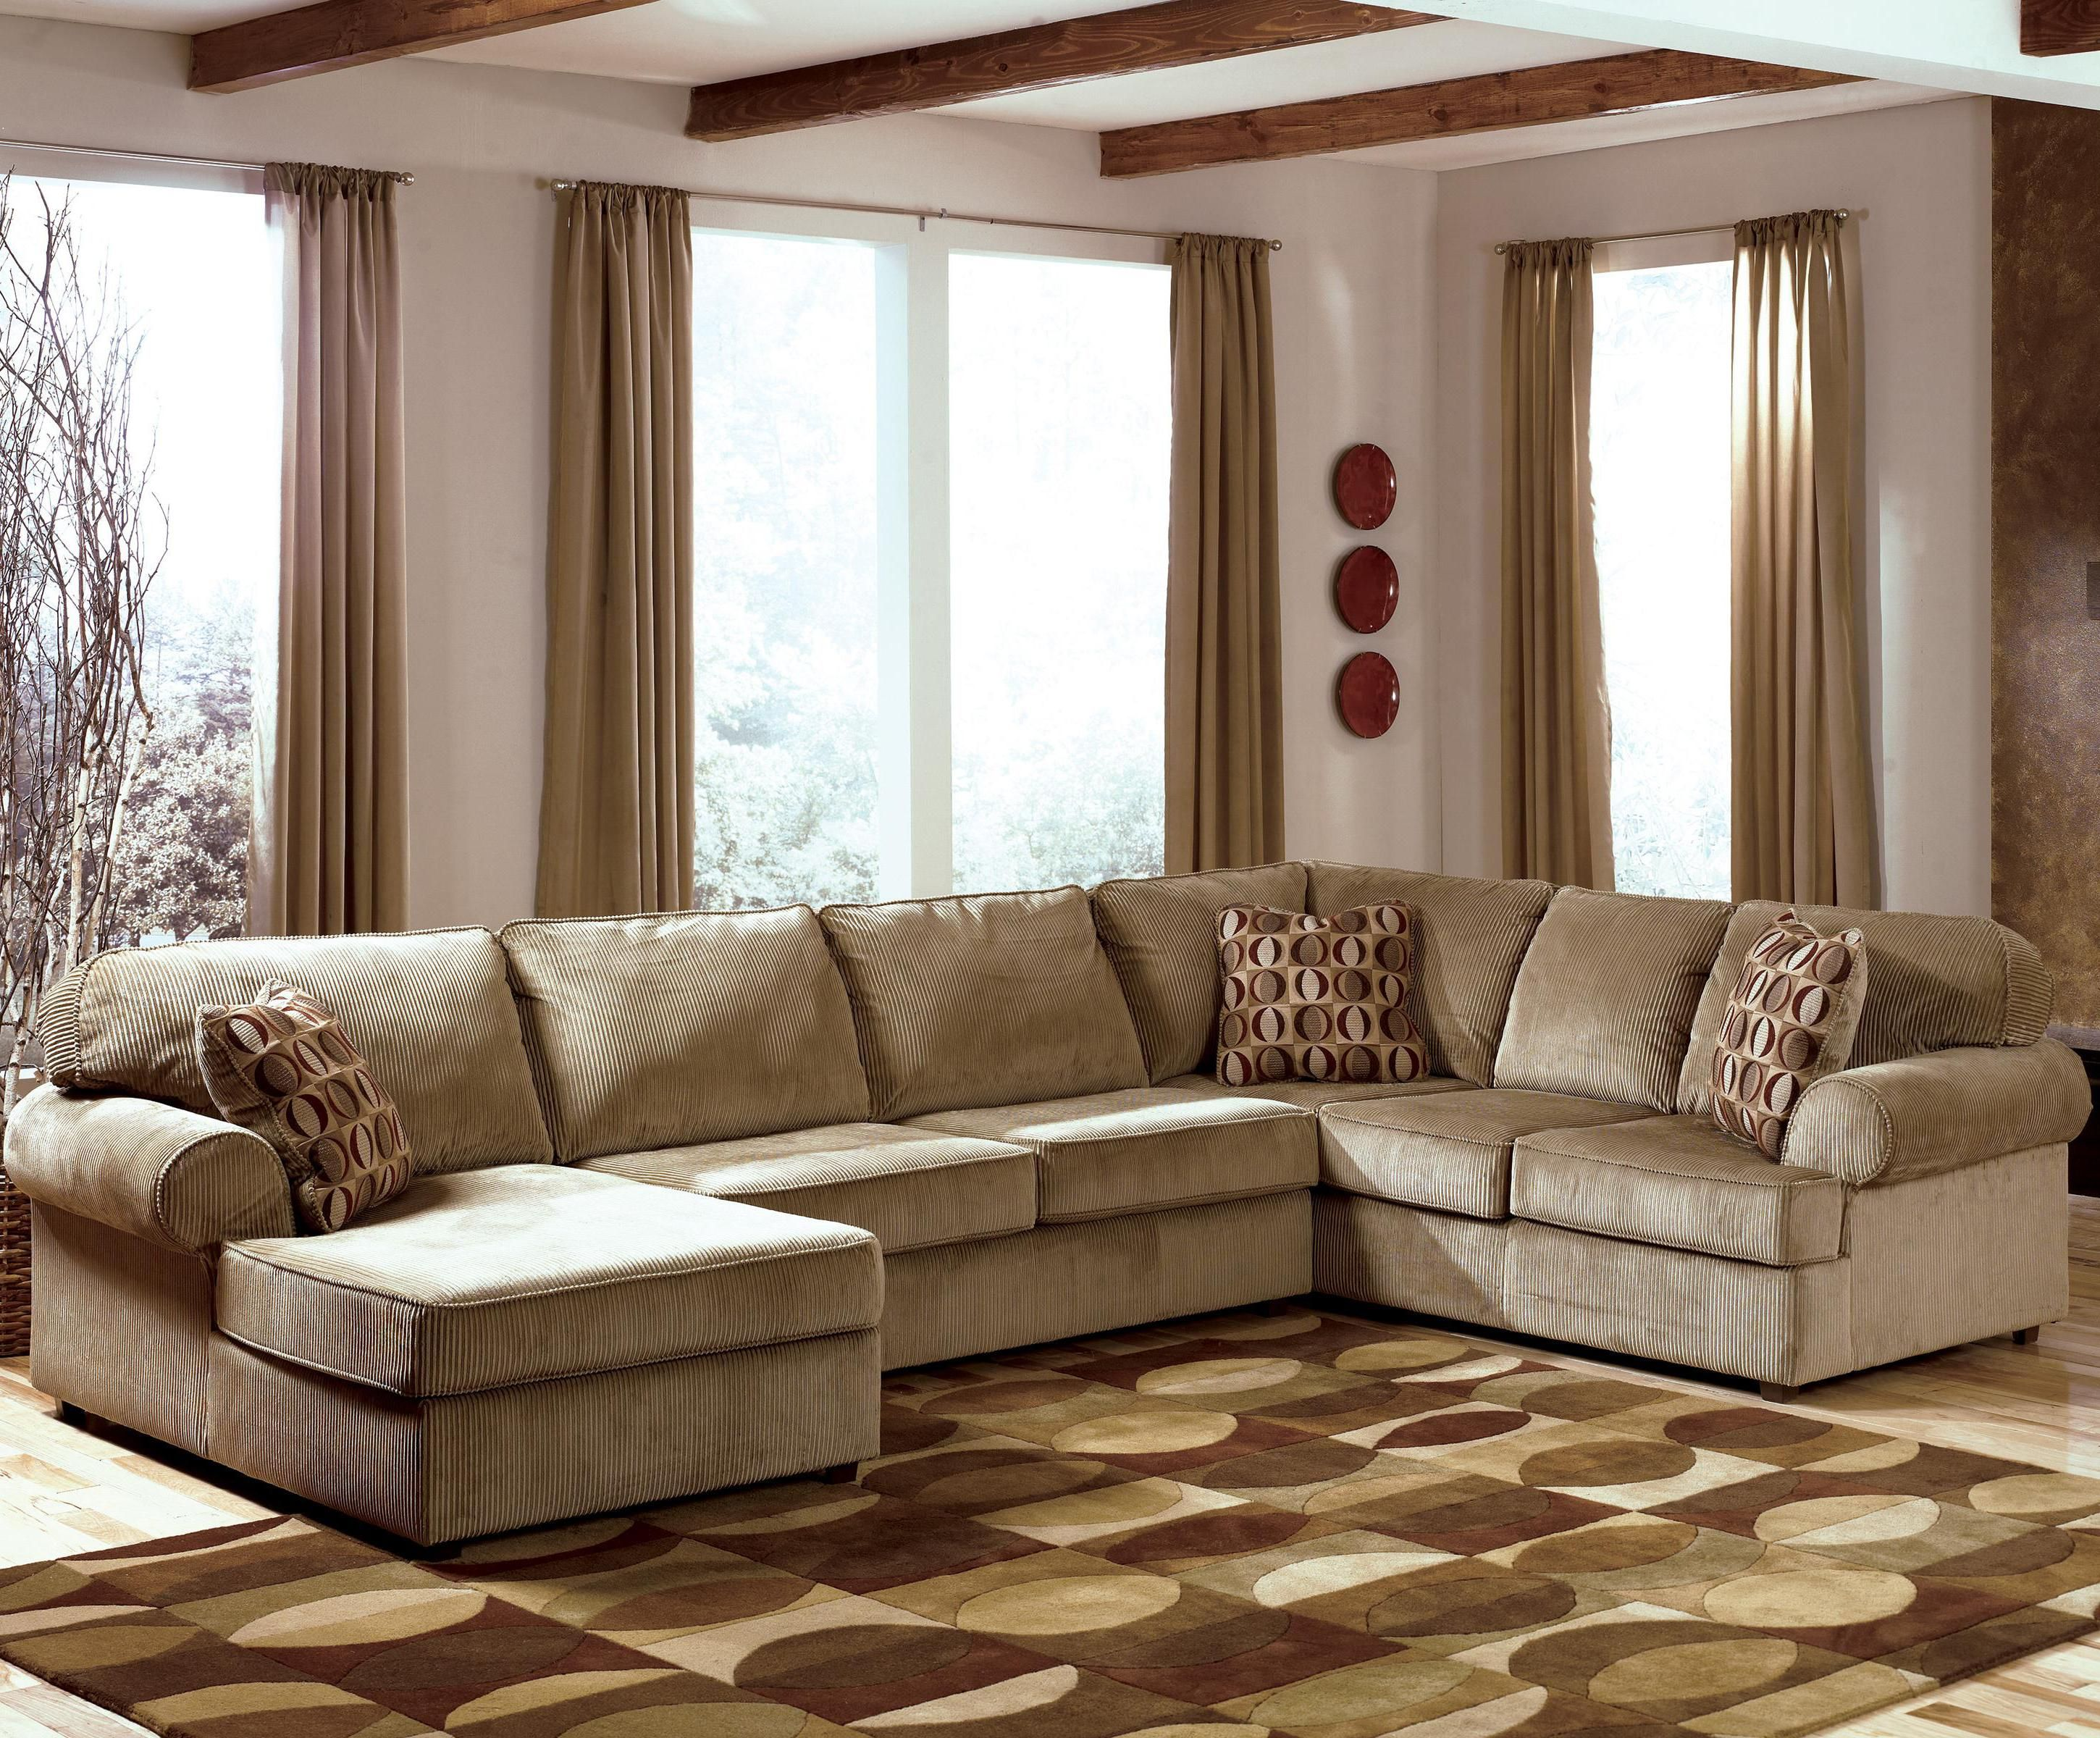 Vista   Cappuccino Casual Sectional With Left Chaise By Ashley Furniture    Miskelly Furniture   Sofa Sectional Jackson, Mississippi